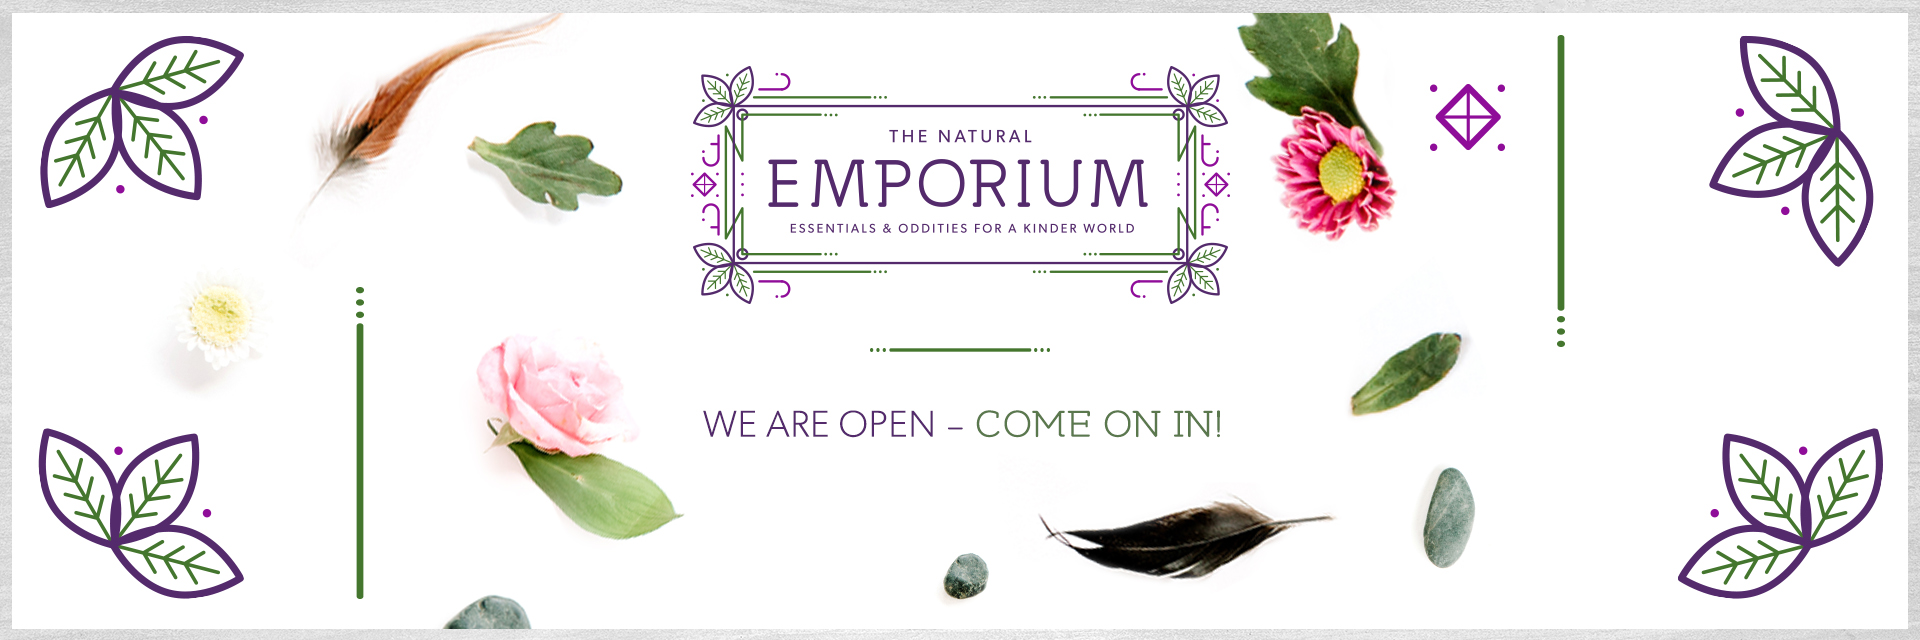 The Natural Emporium Launches in Churchill Square